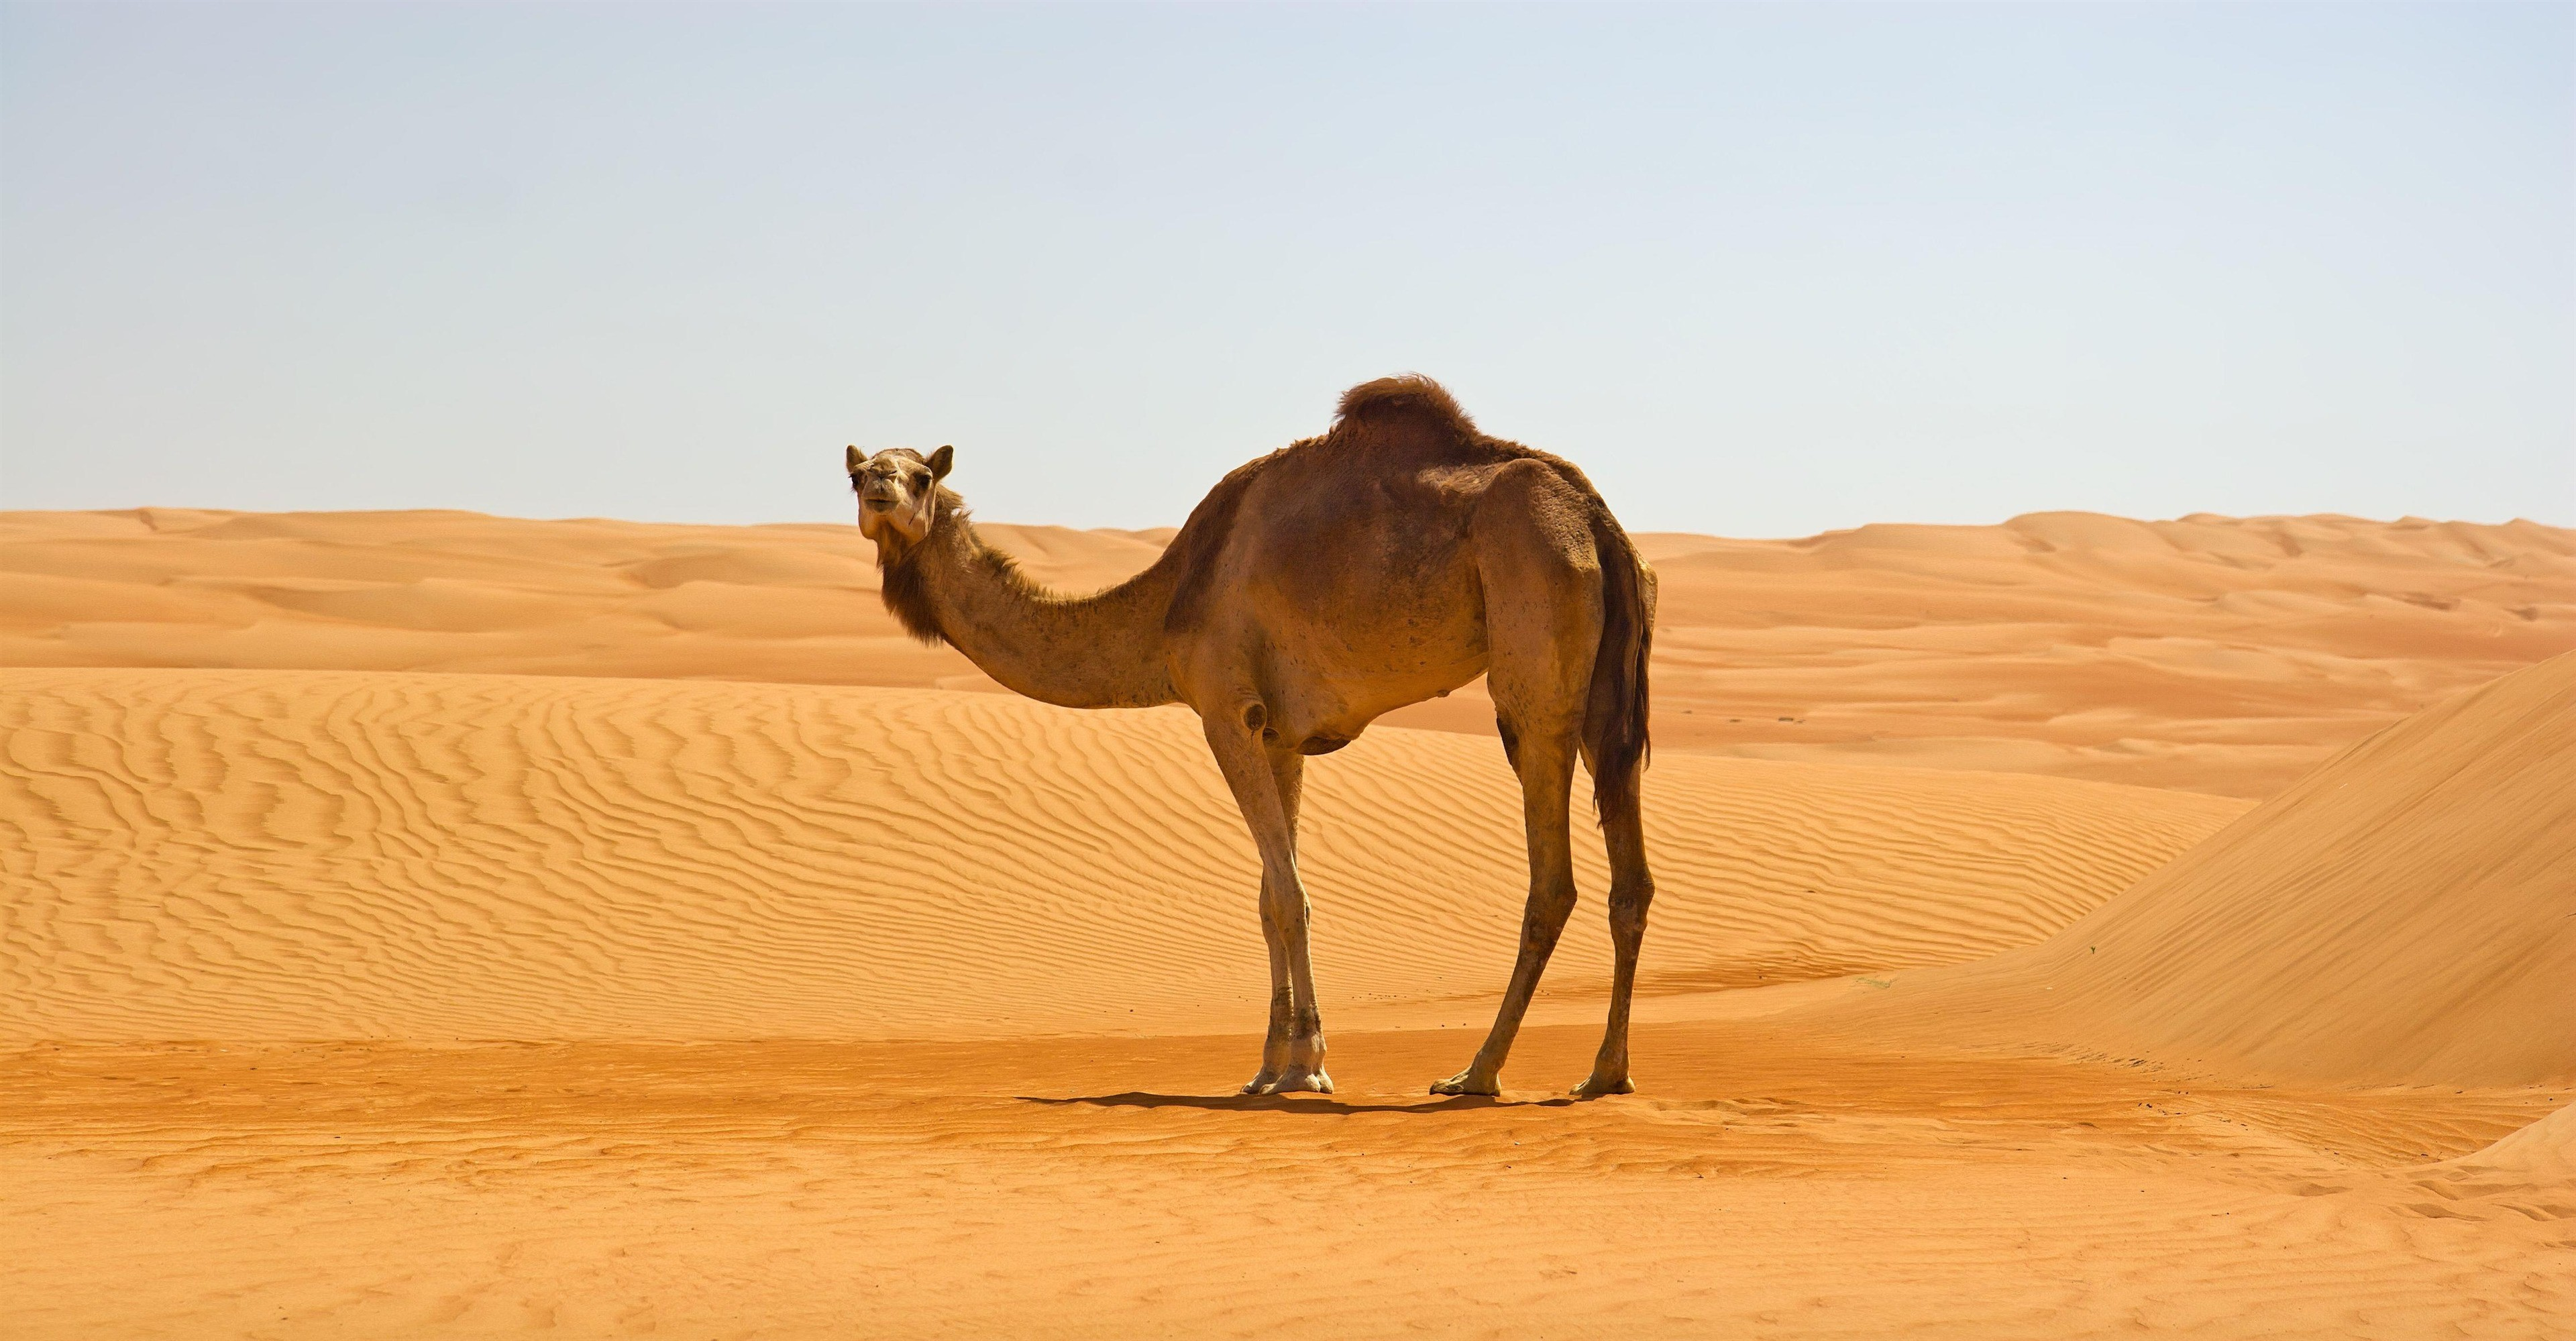 Camel in Namib Desert 4K Wallpapers